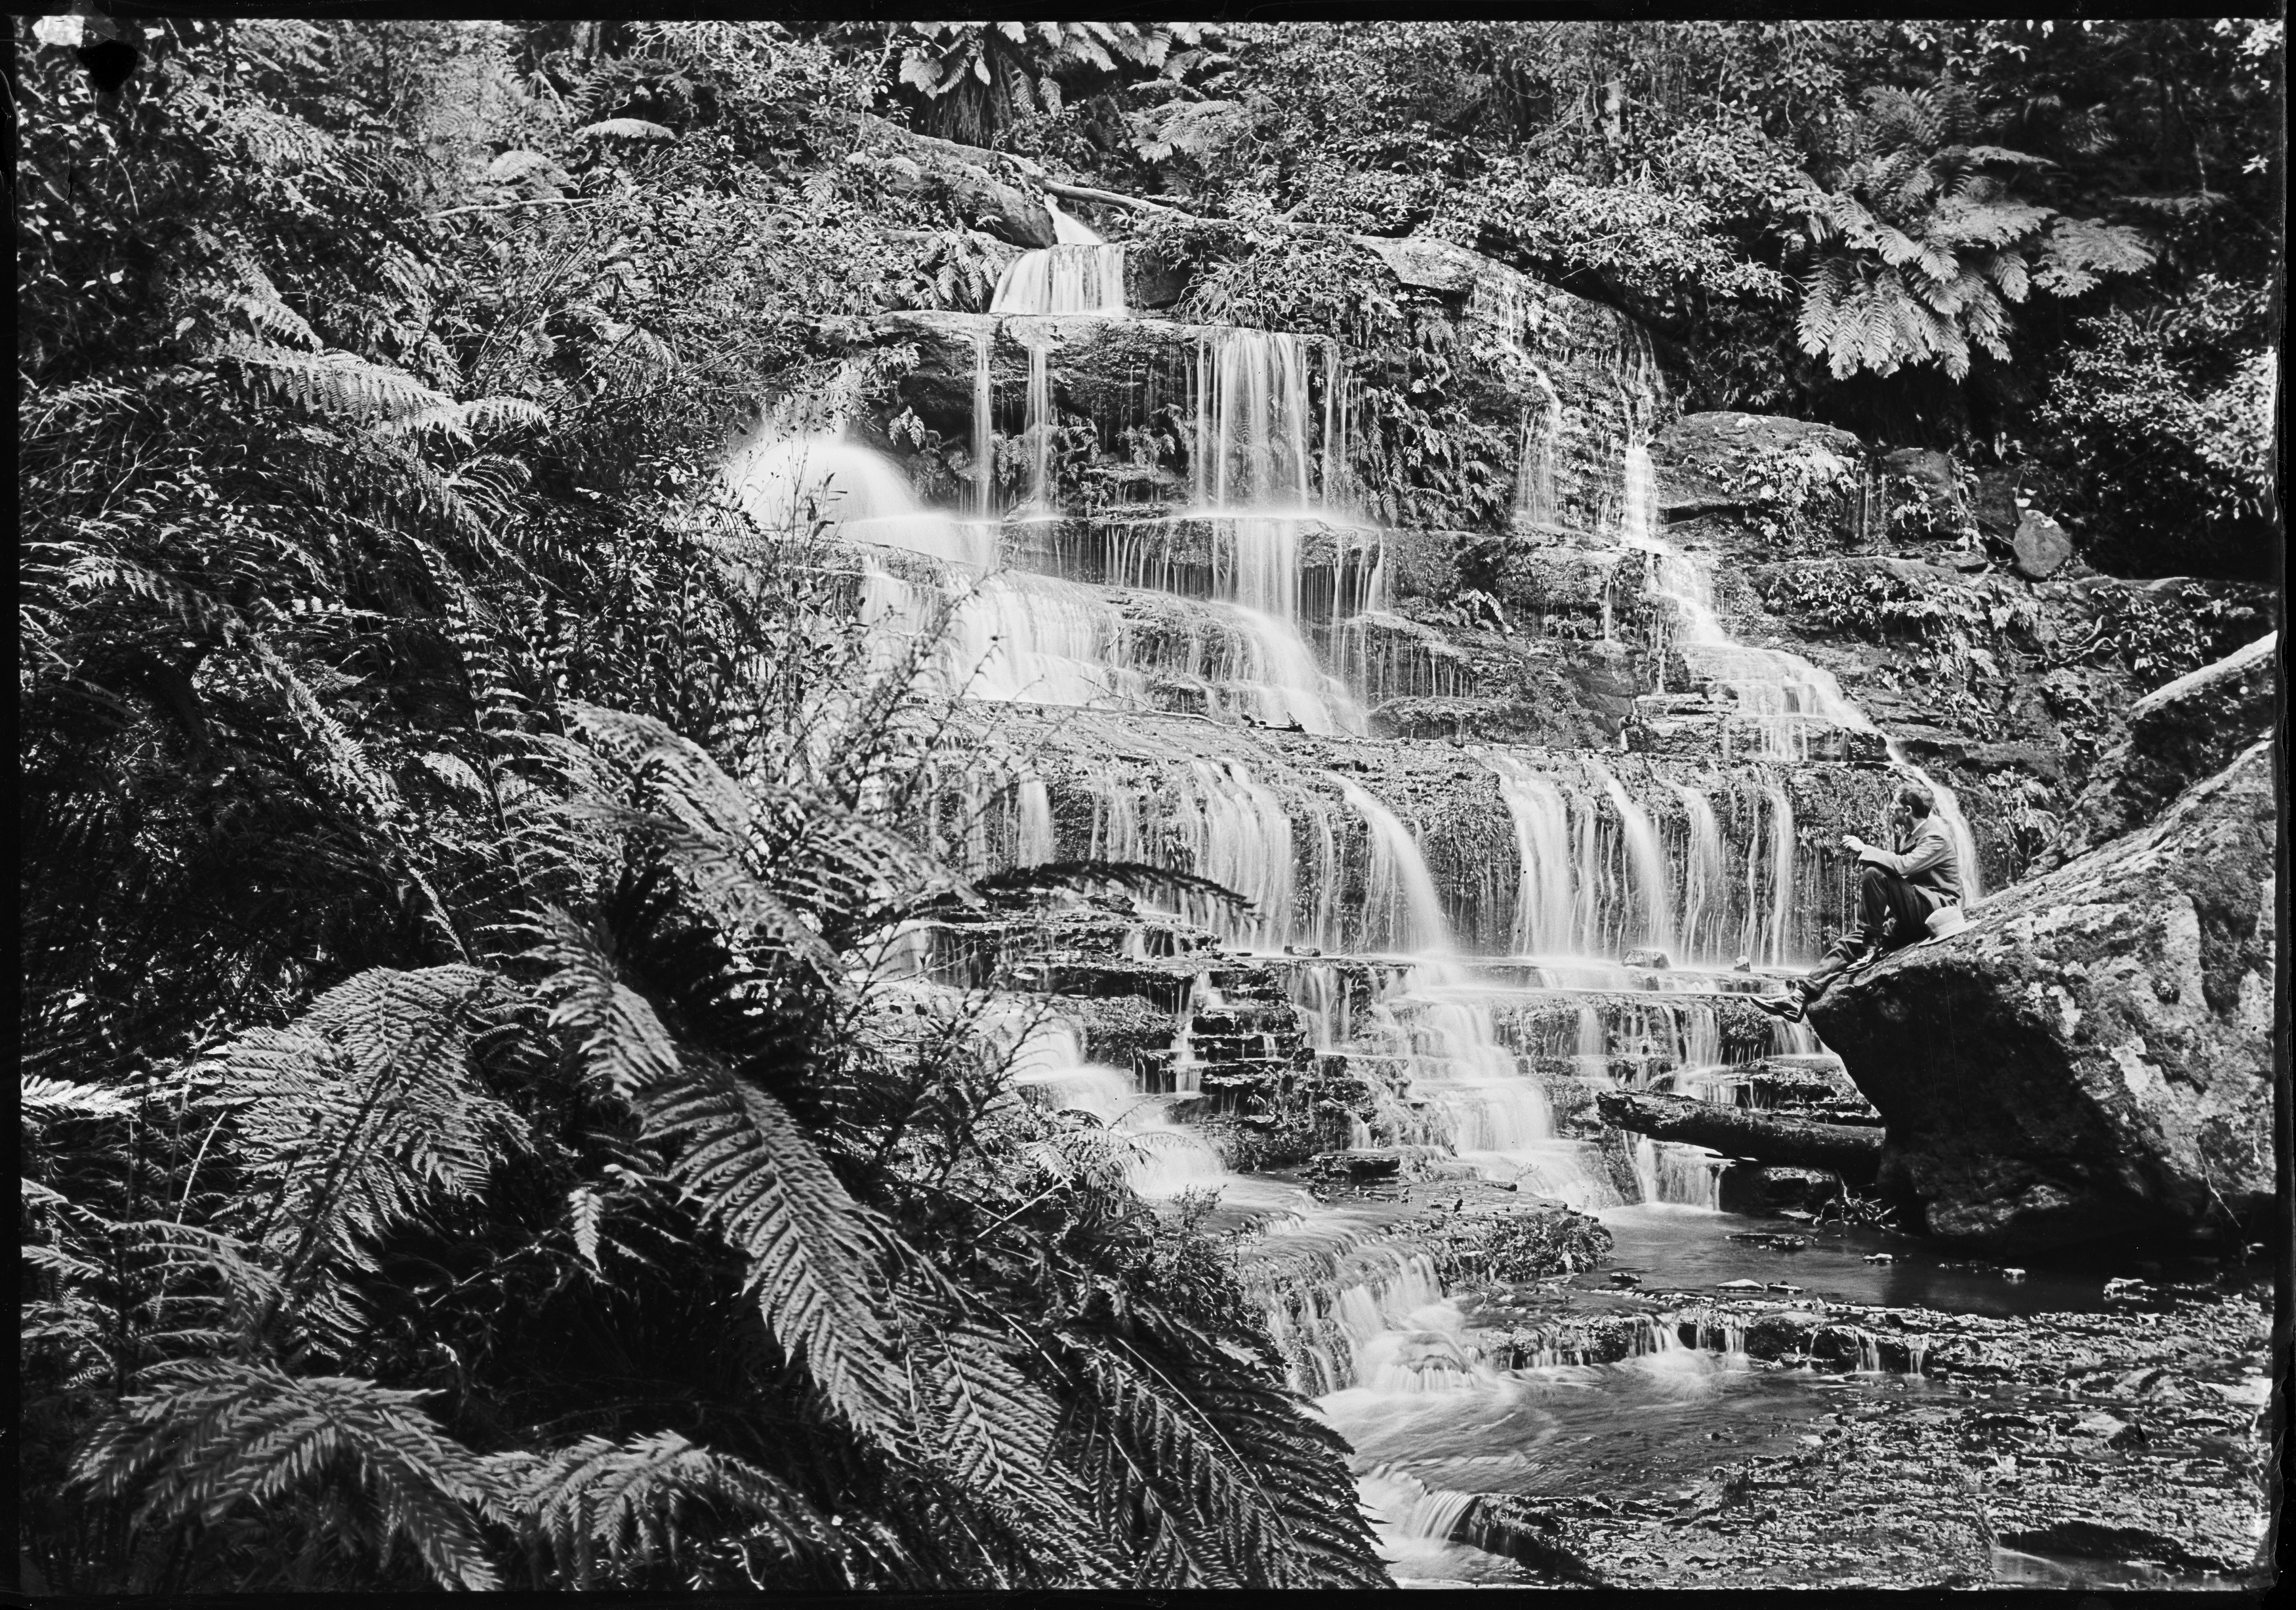 Black and white photograph of a cascading waterfall. A man sits on a rock in the foreground.